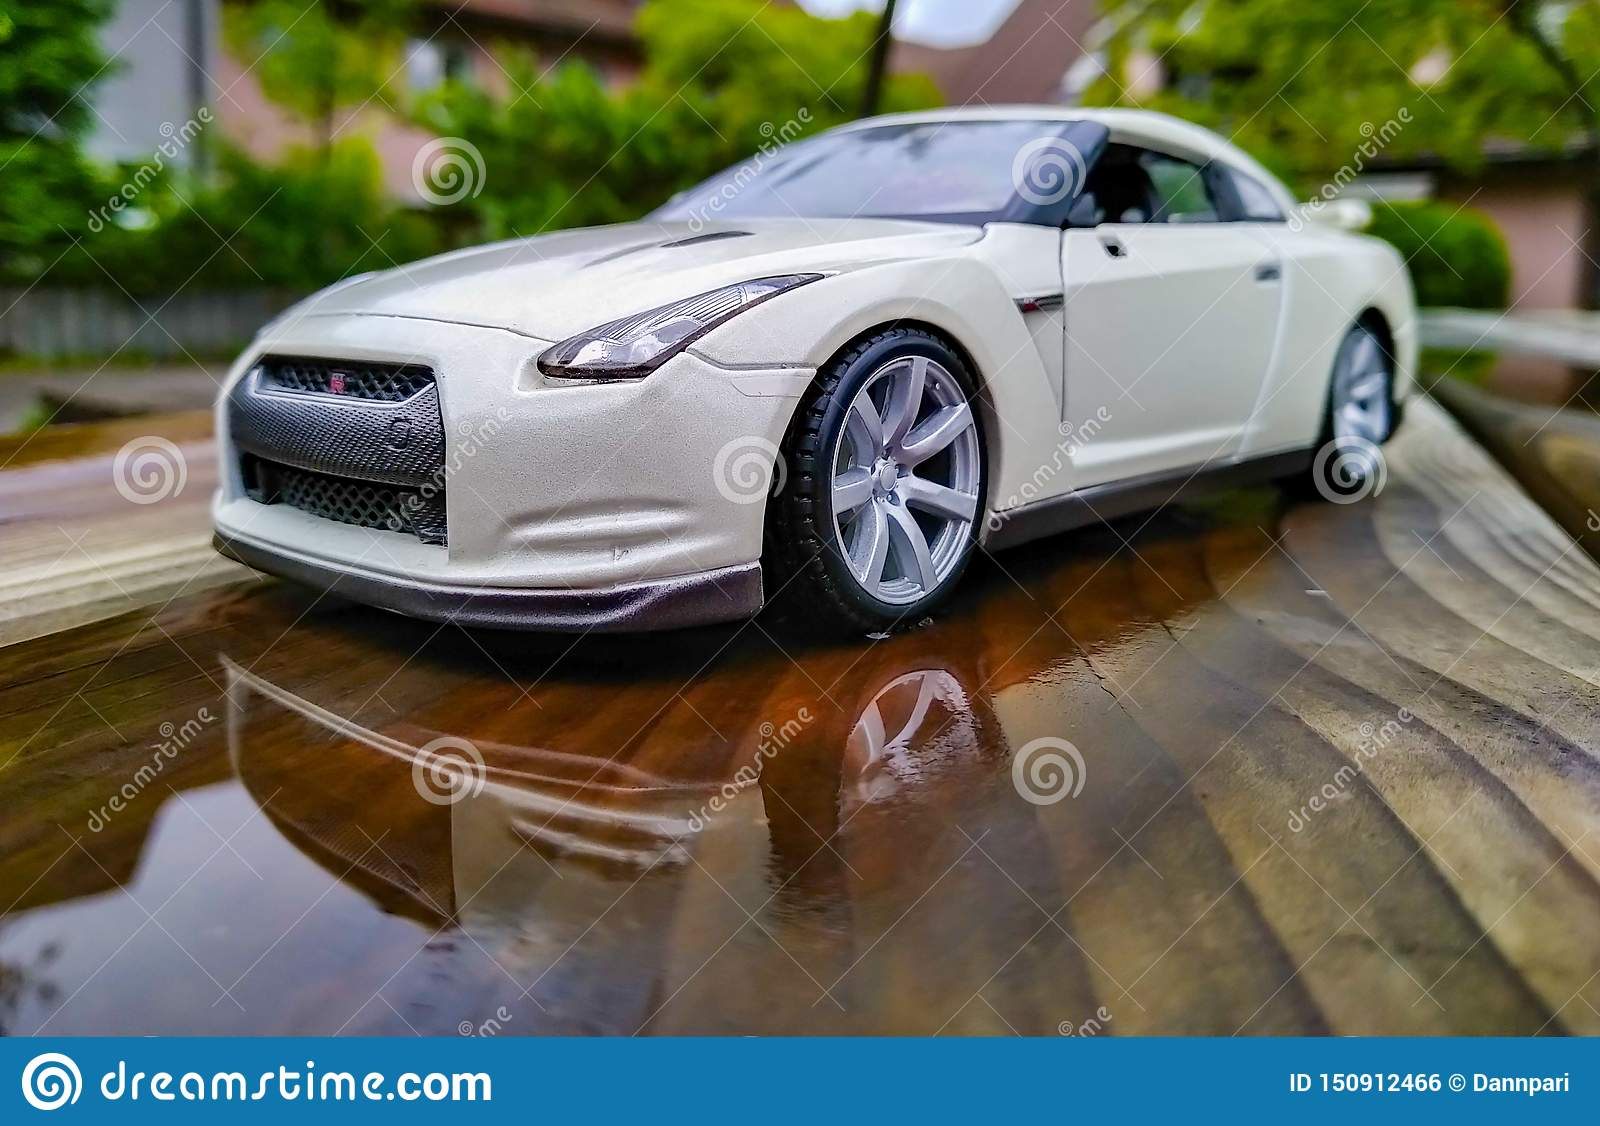 Photo of car toy